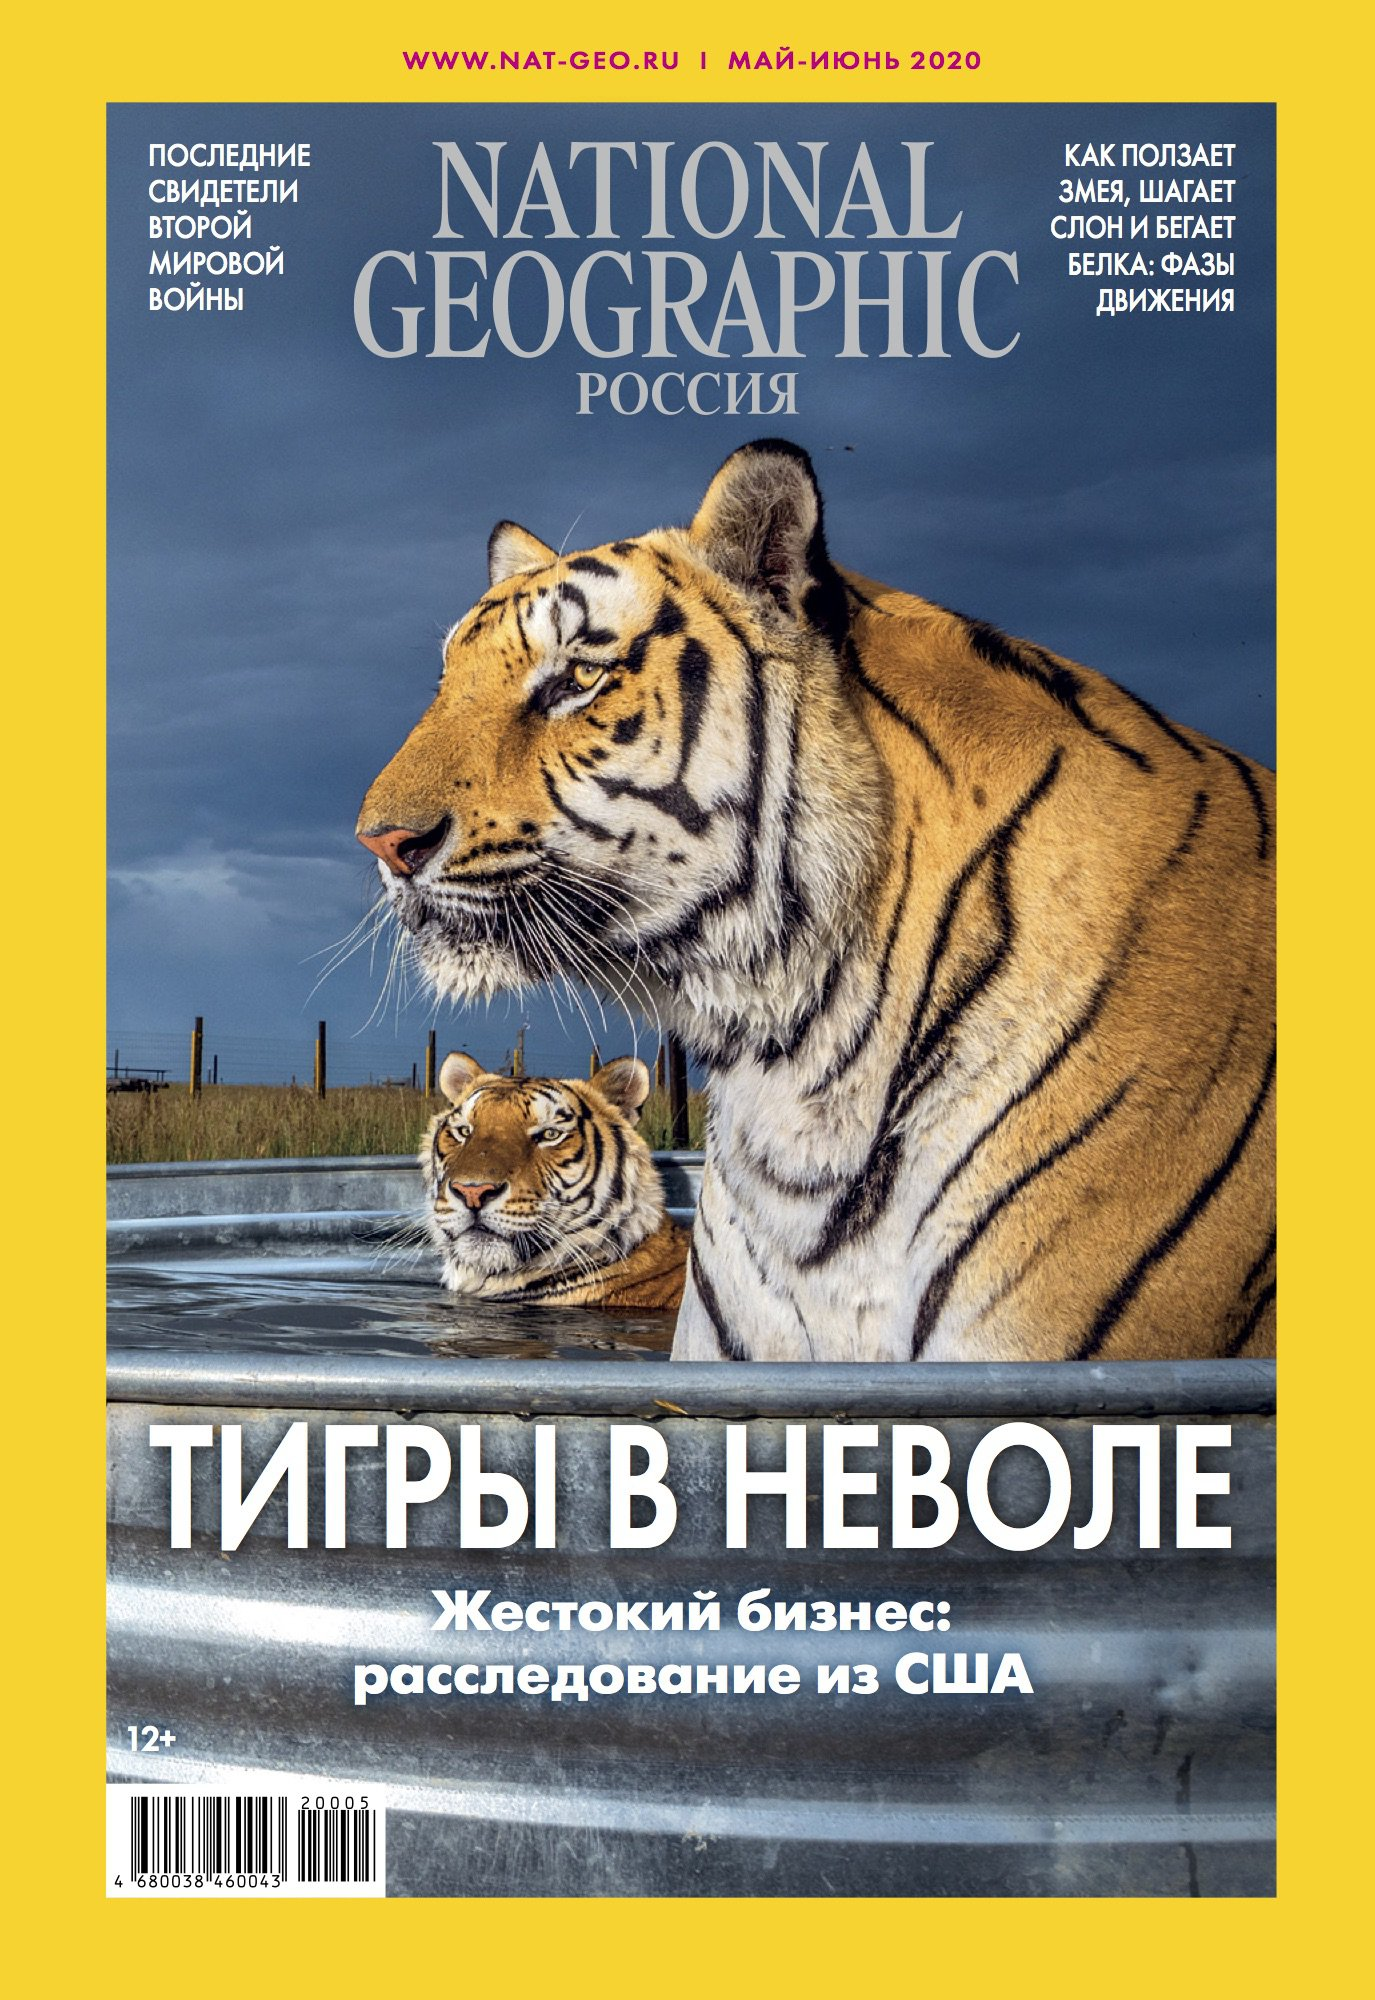 National Geographic №200, май–июнь 2020